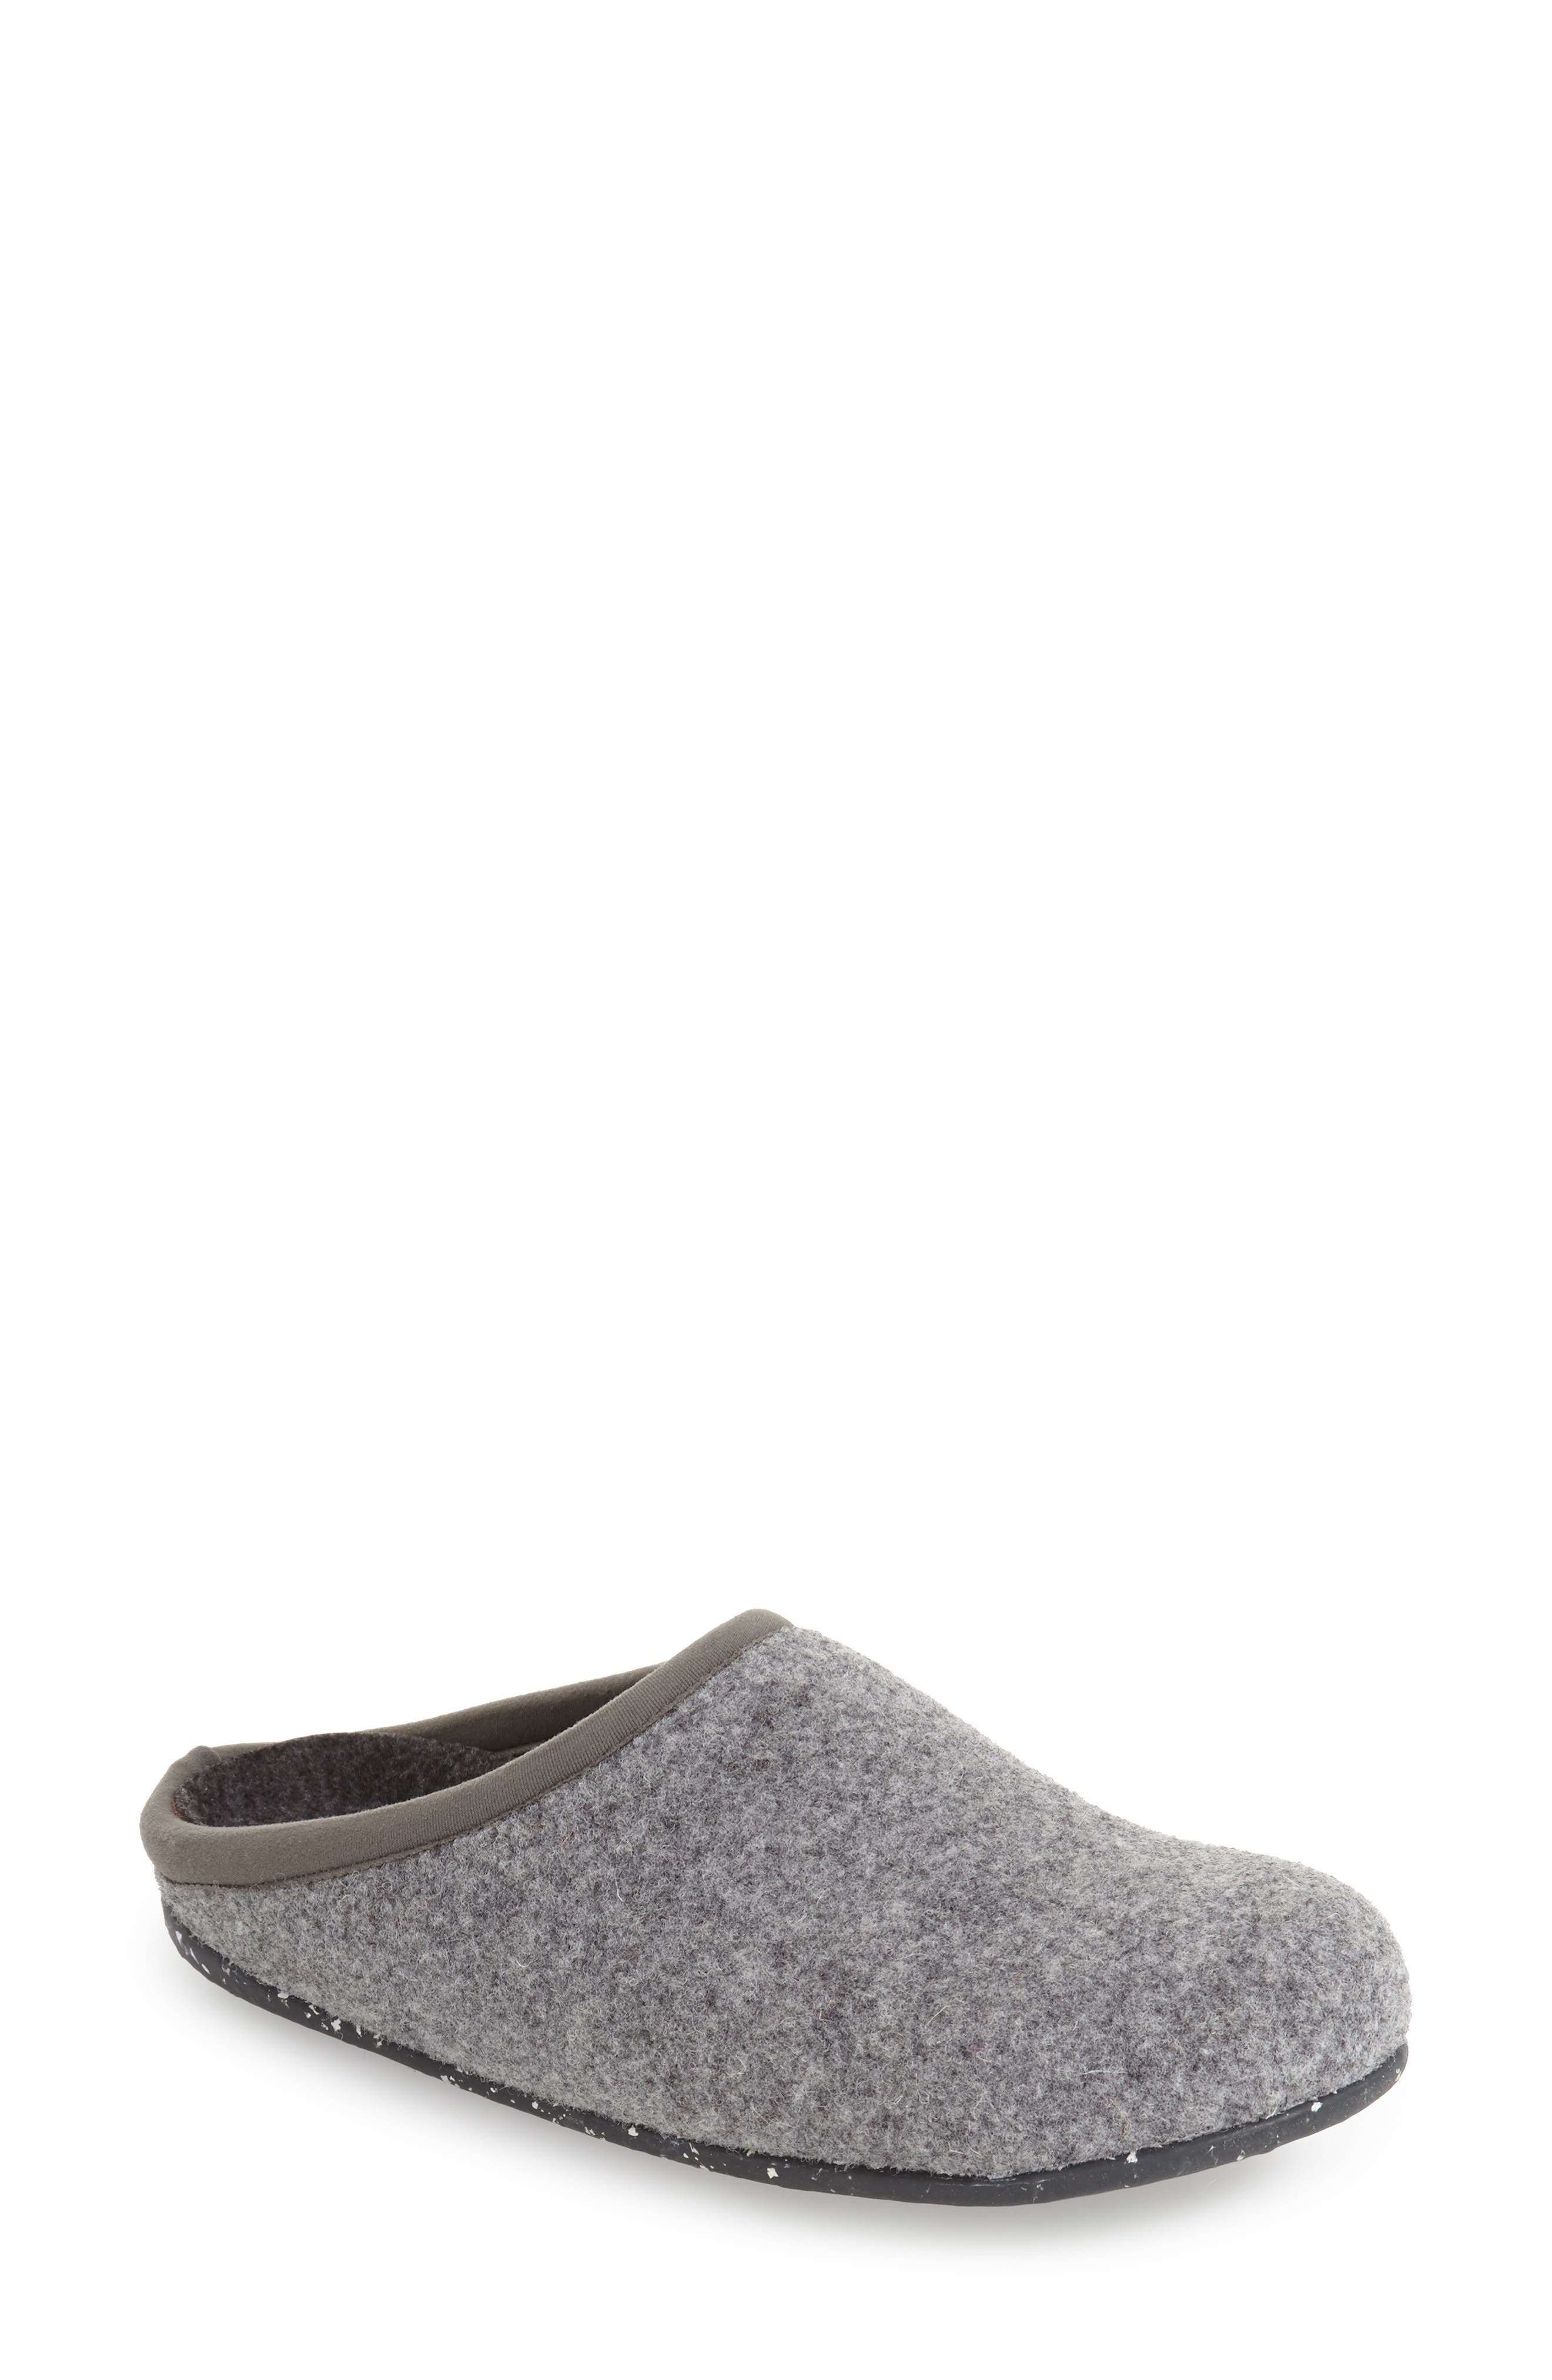 'Wabi' Slipper,                             Alternate thumbnail 4, color,                             DARK GRAY WOOL